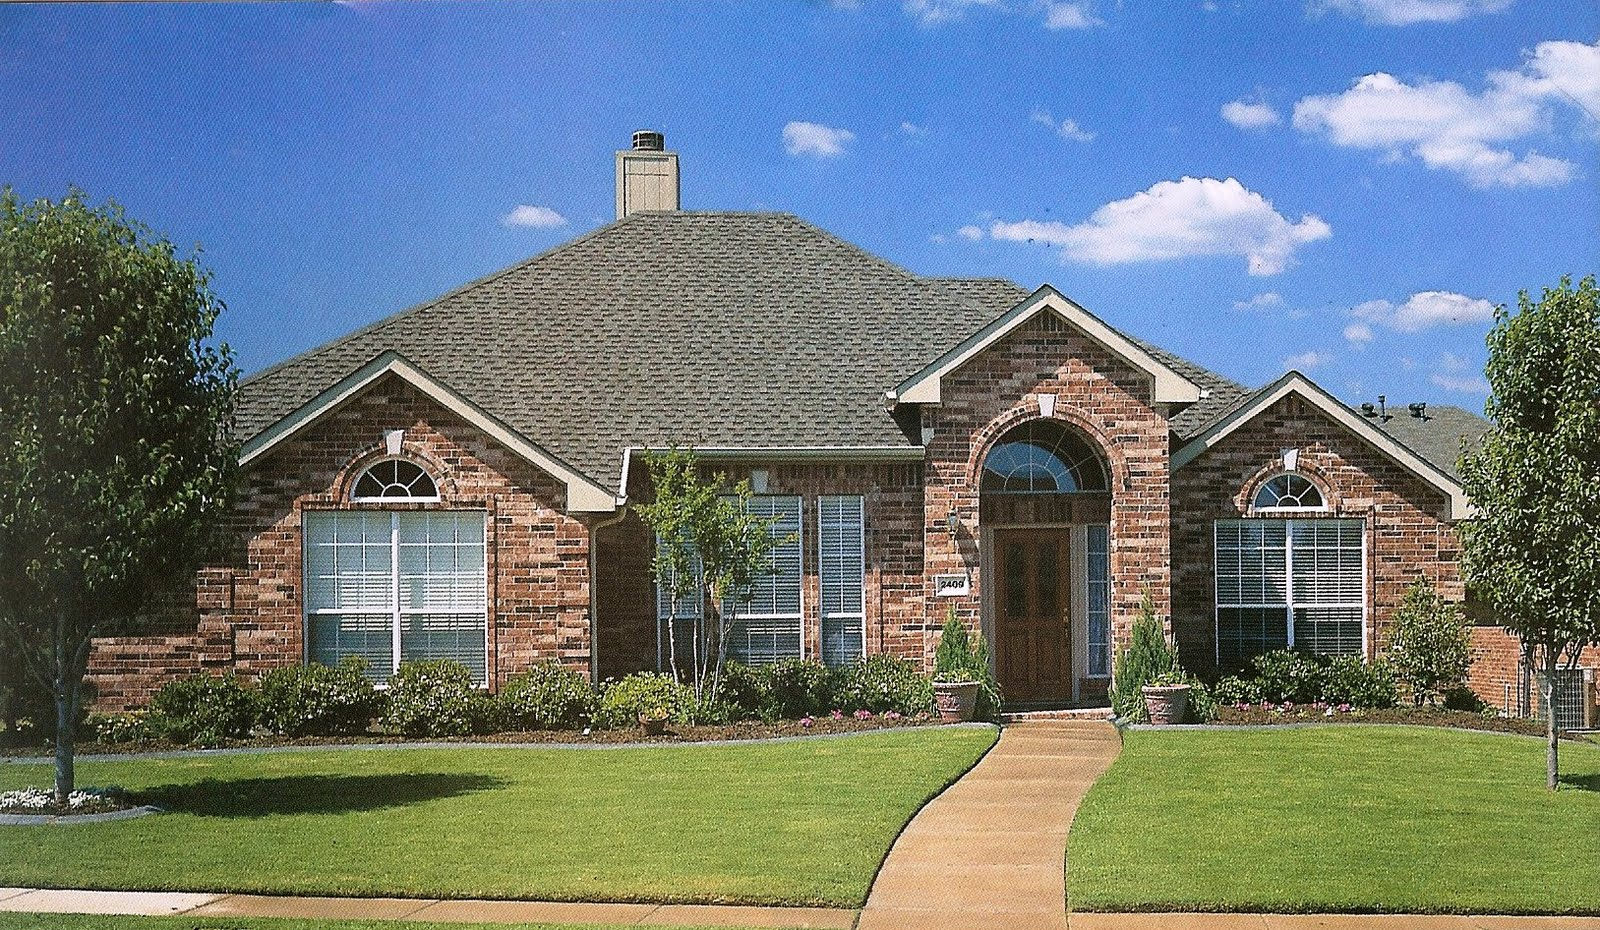 Garland Residential Roofing Guide Shingle Amp Composite